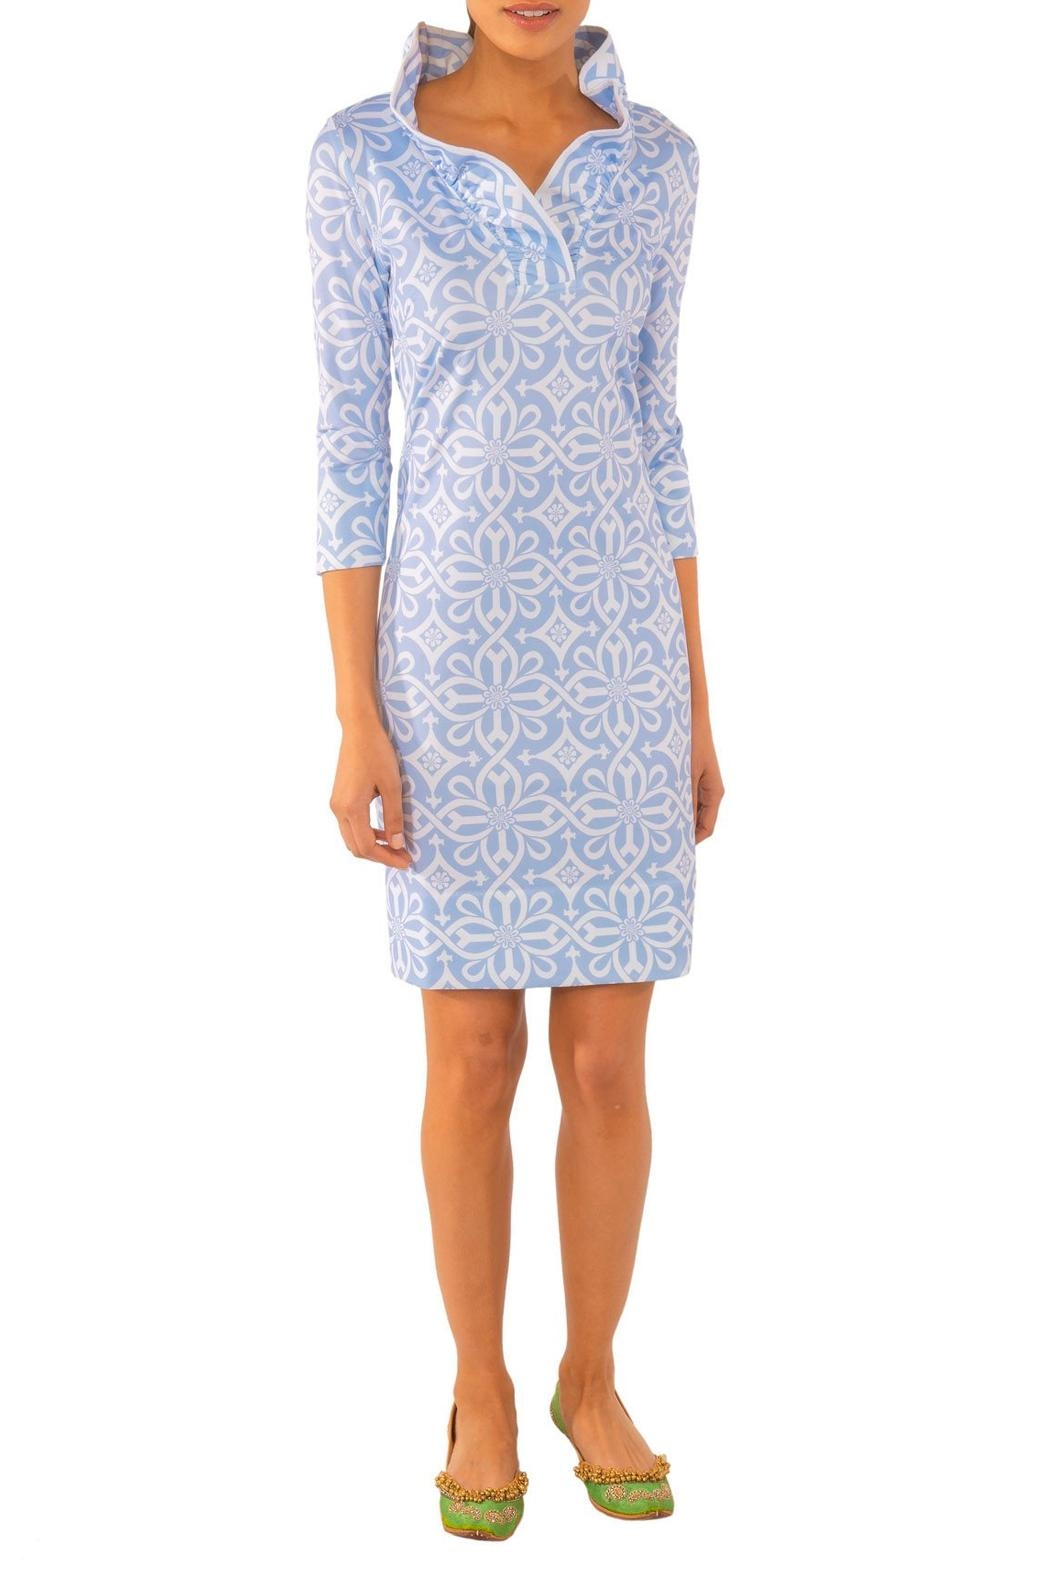 Gretchen Scott Jersey Ruffneck Dress-Piazza - Back Cropped Image